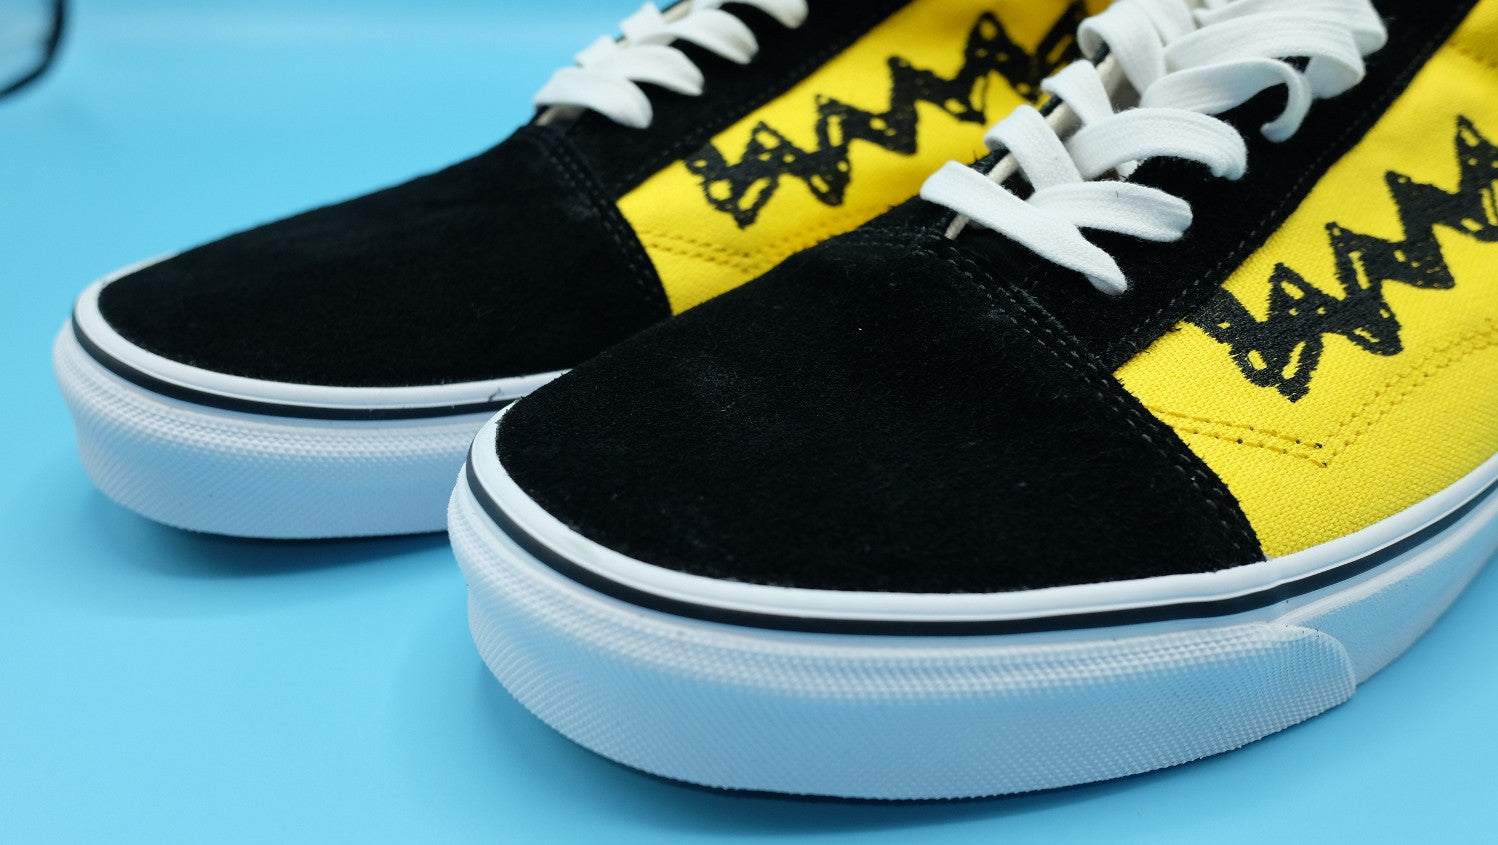 821629b195 ... VANS Old Skool   Peanuts Charlie brown Yellow Black   size 12(US) ...